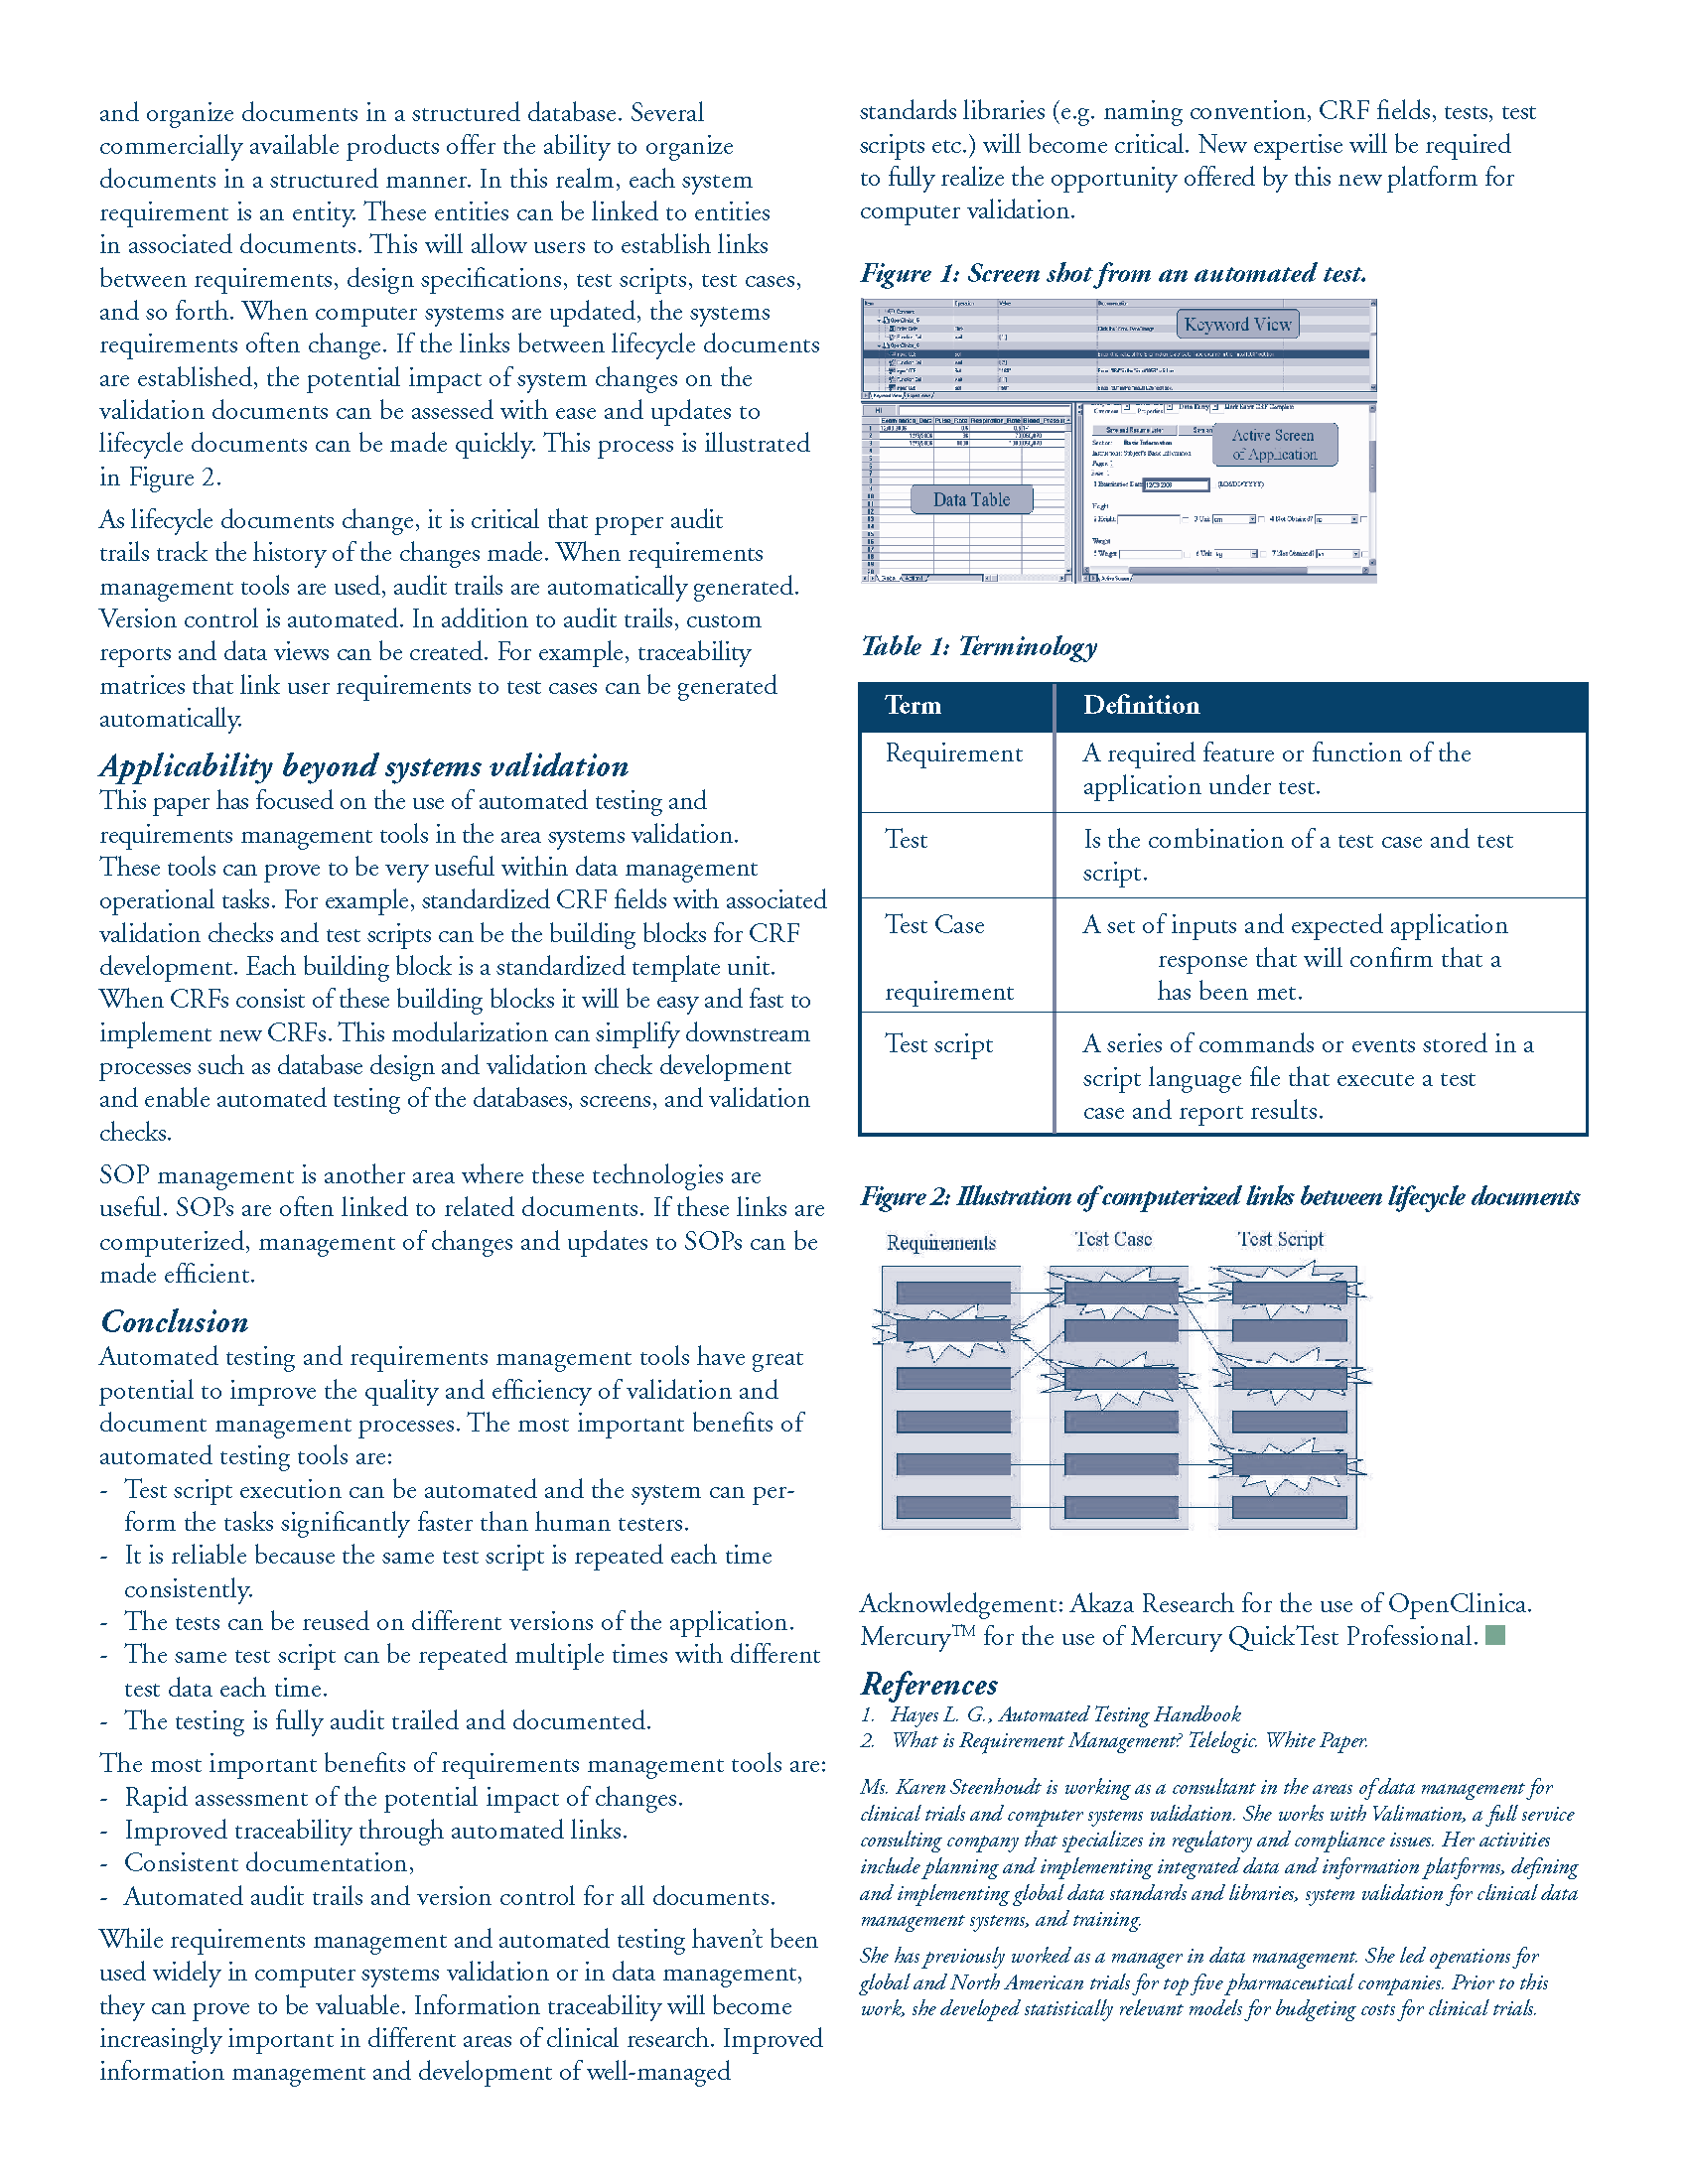 SCDM-databasics-art-rep-highres_Page_2.png